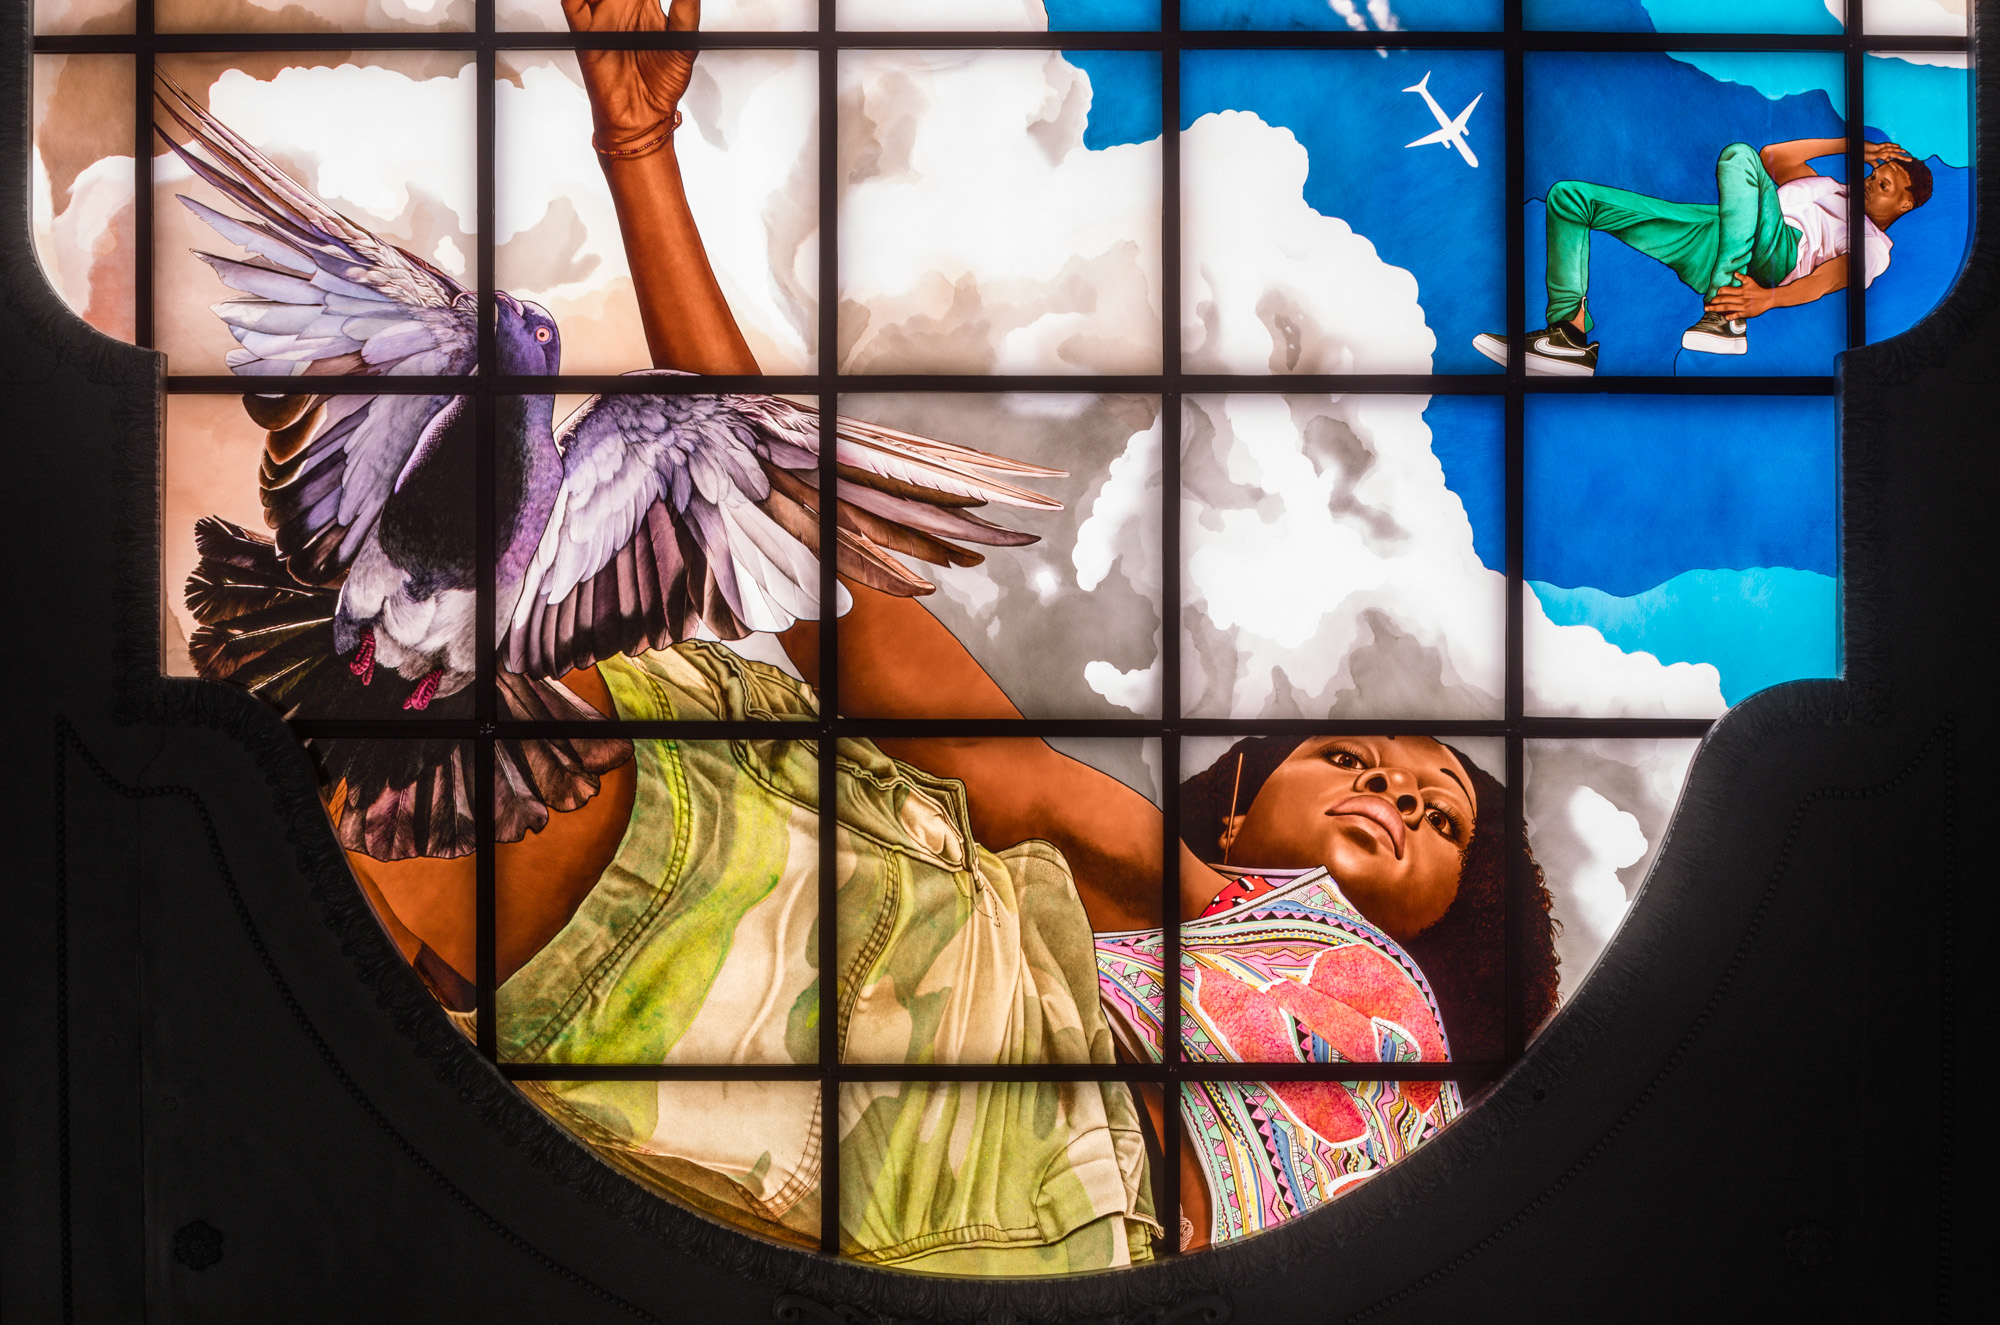 Kehinde Wiley, Go, 2020. © Kehinde Wiley. An original work of art commissioned by Empire State Development in partnership with Public Art Fund for Moynihan Train Hall.  Photographer: Nicholas Knight. Image courtesy of the Artist, Sean Kelly, New York, Empire State Development and Public Art Fund, NY